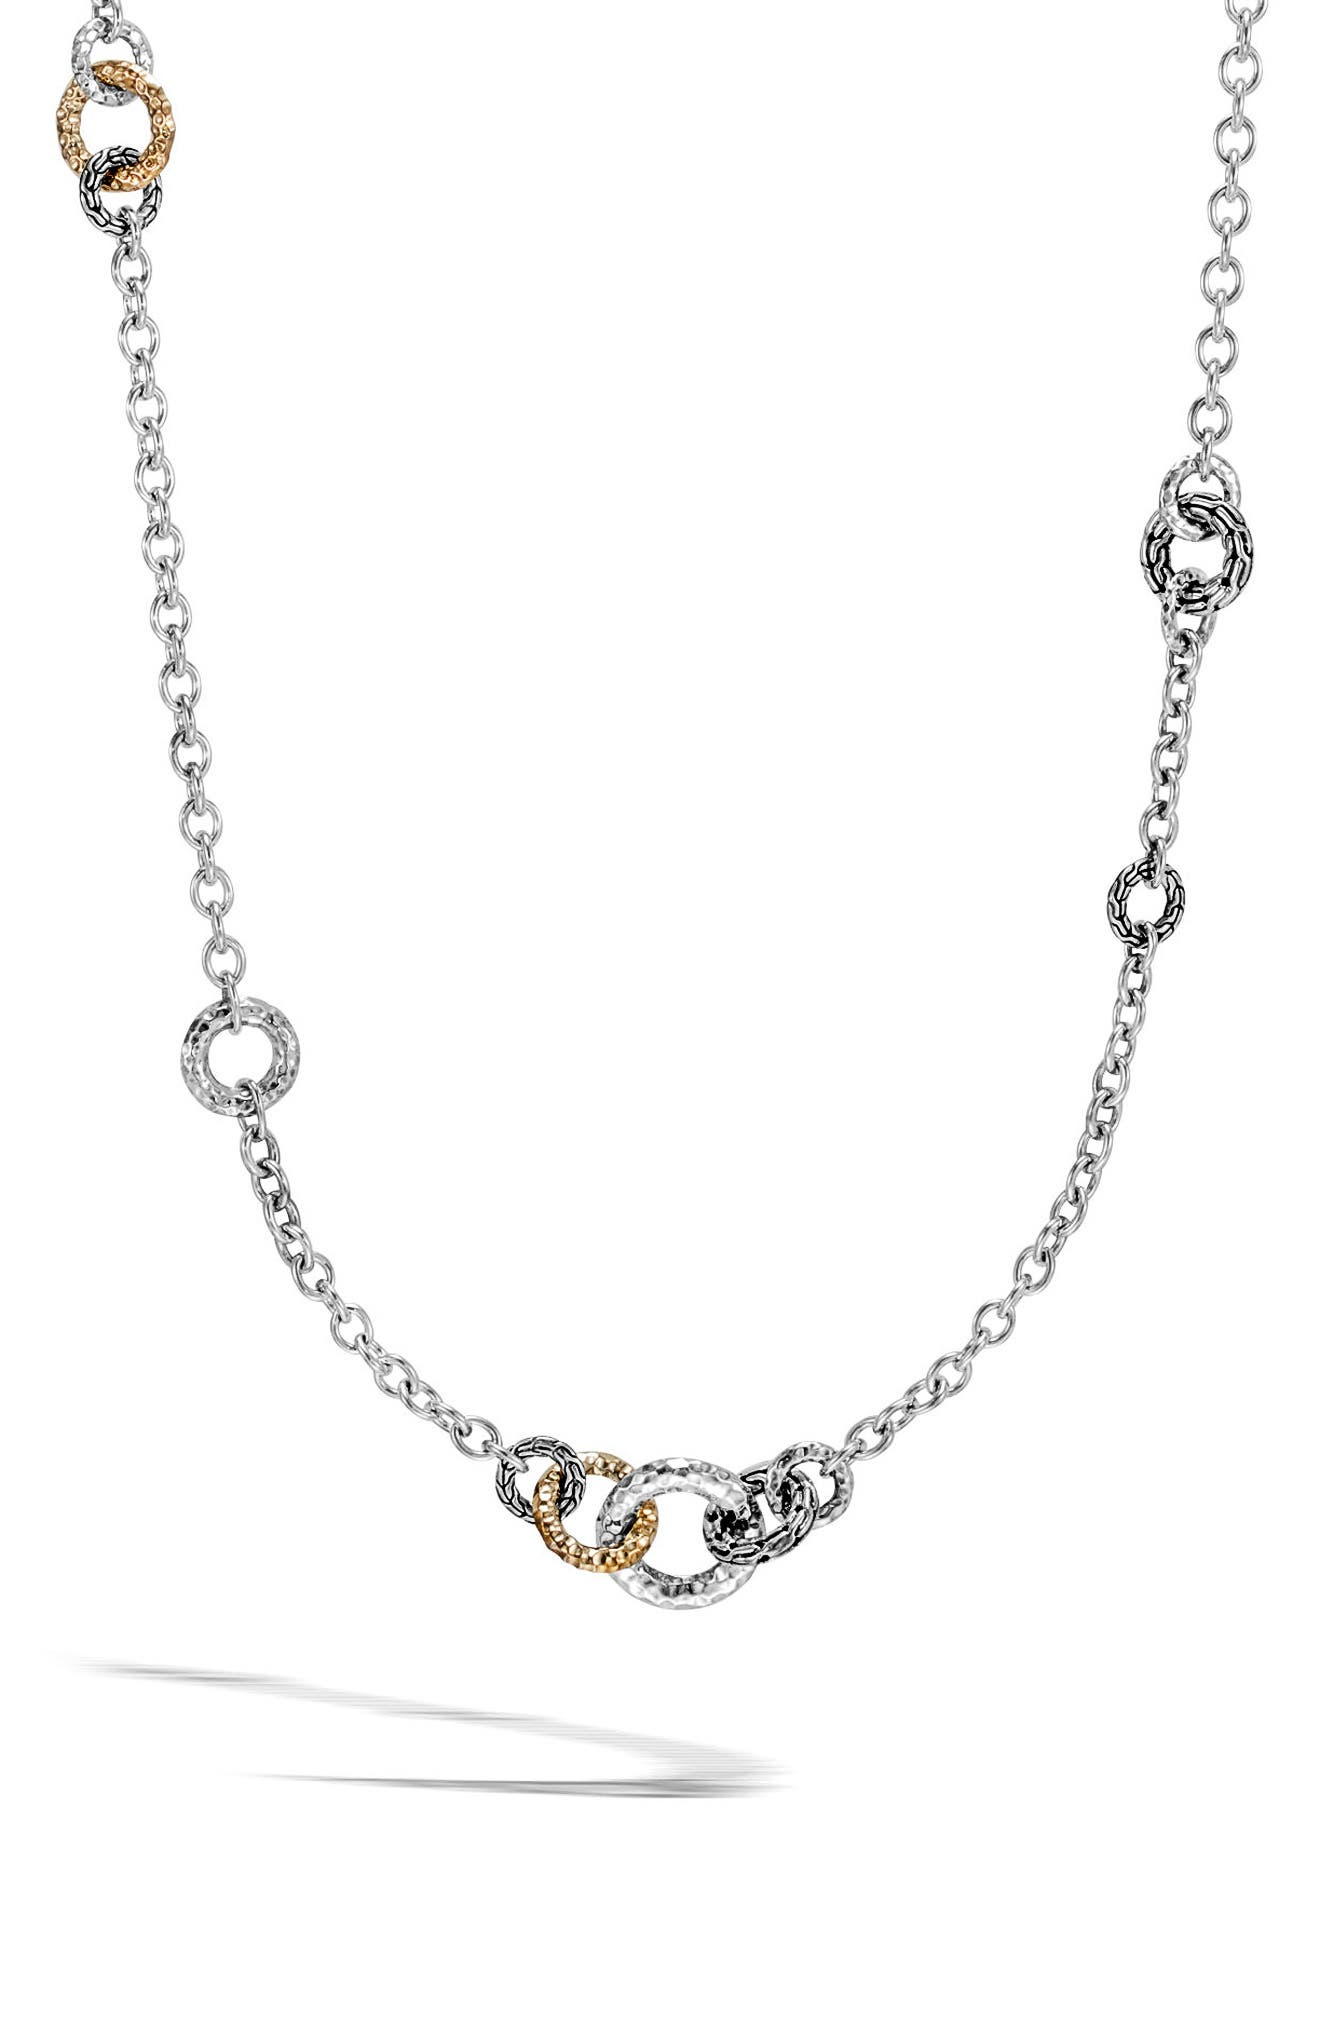 Main Image - John Hardy Classic Chain Hammered Link Sautoir Necklace